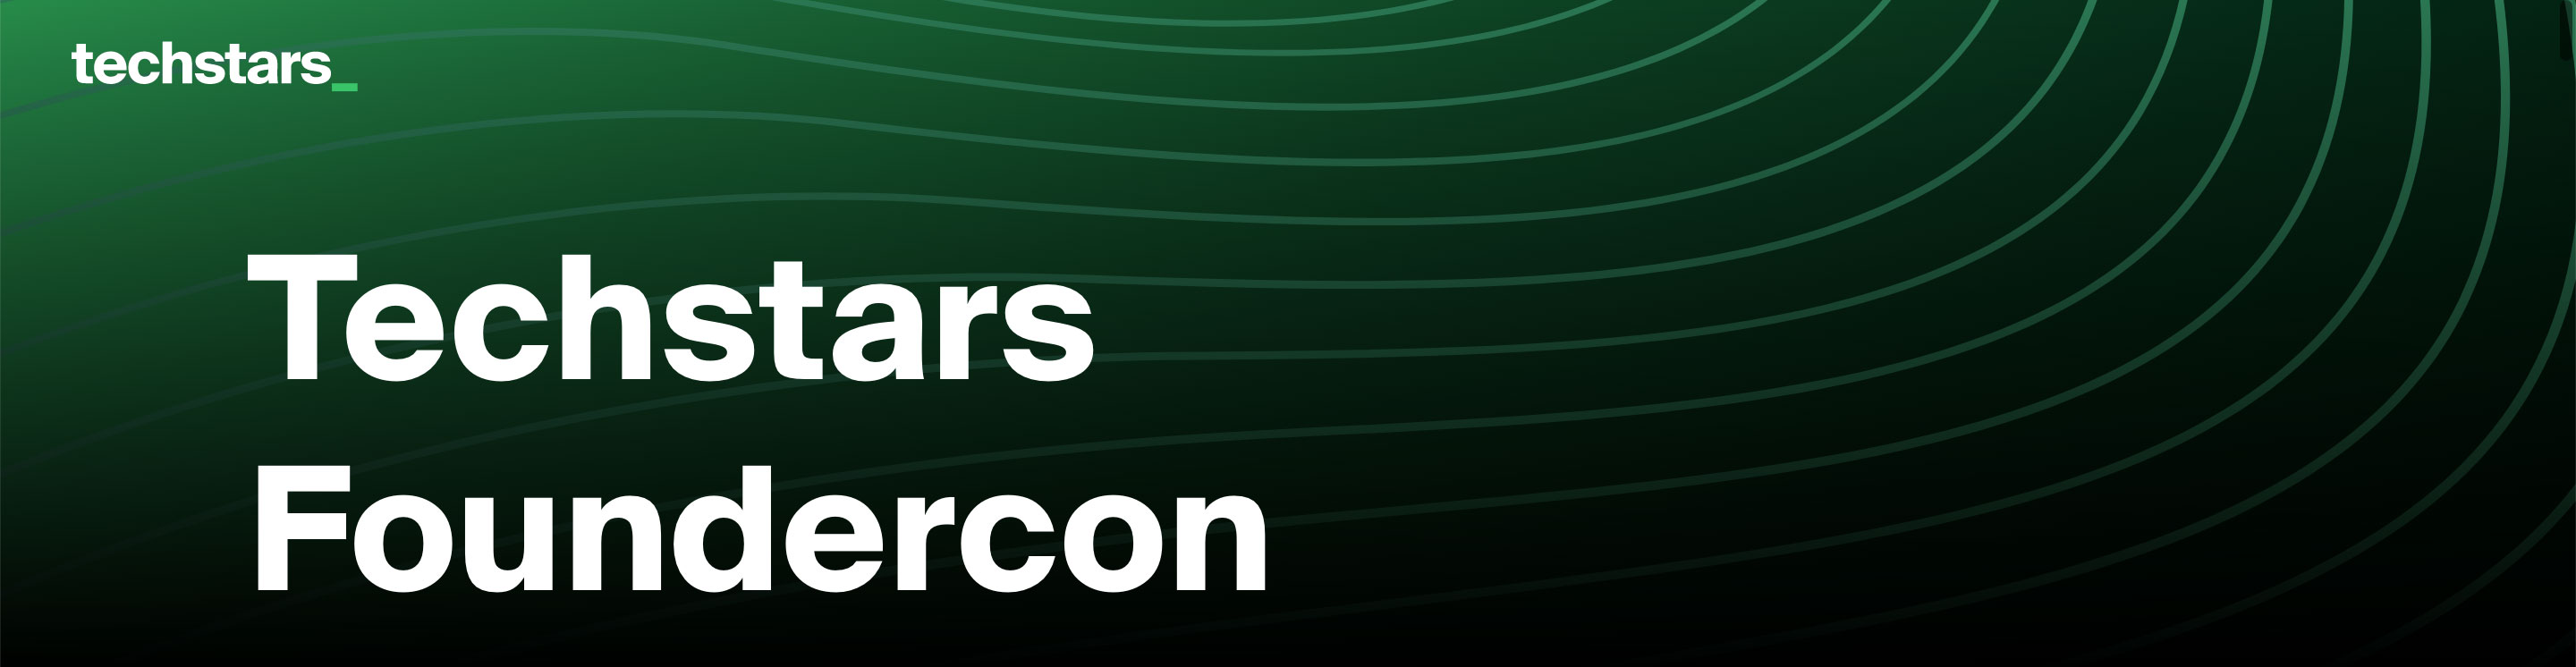 Techstars Foundercon 2020